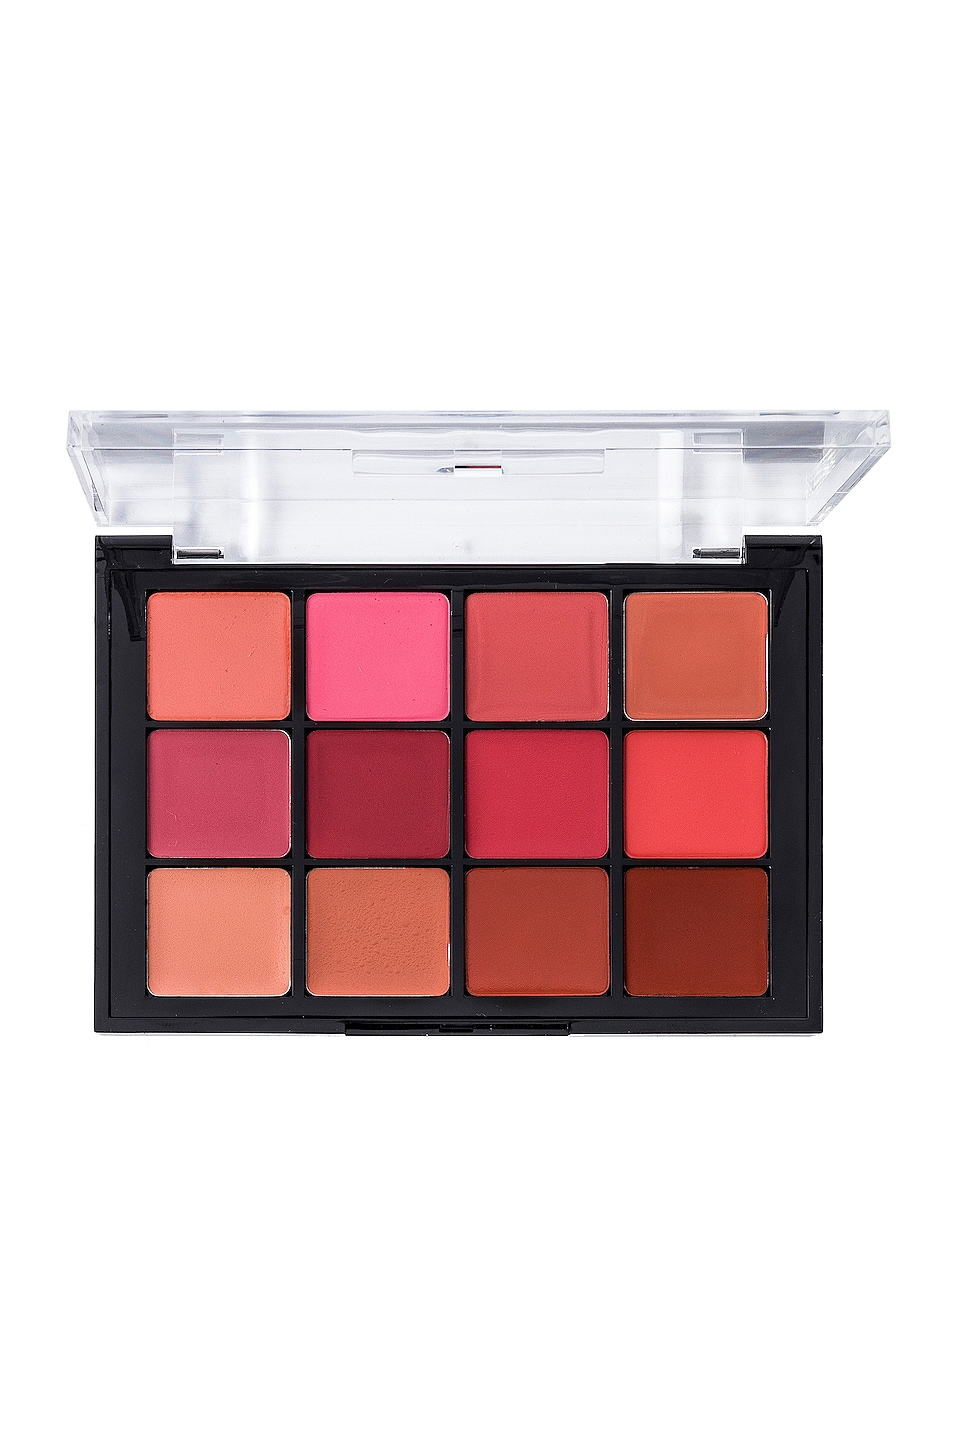 Viseart Lip Palette in 02 Classic Paris Velvet